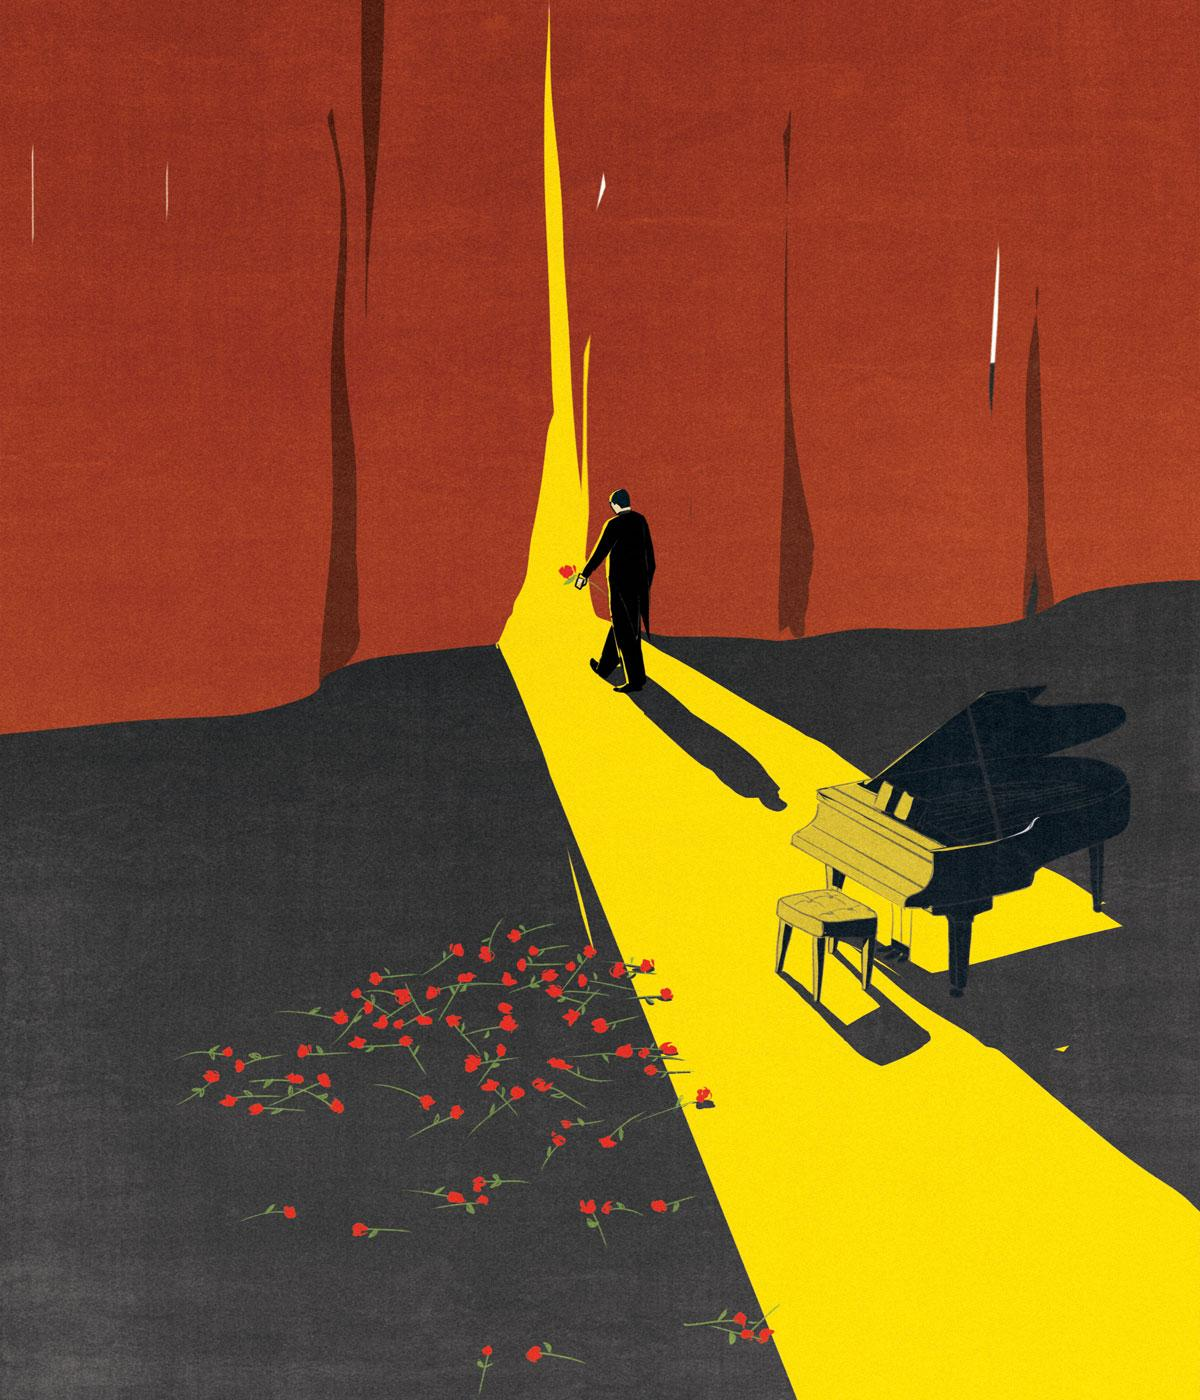 An illustration depicting a pianist going out for the final curtain call